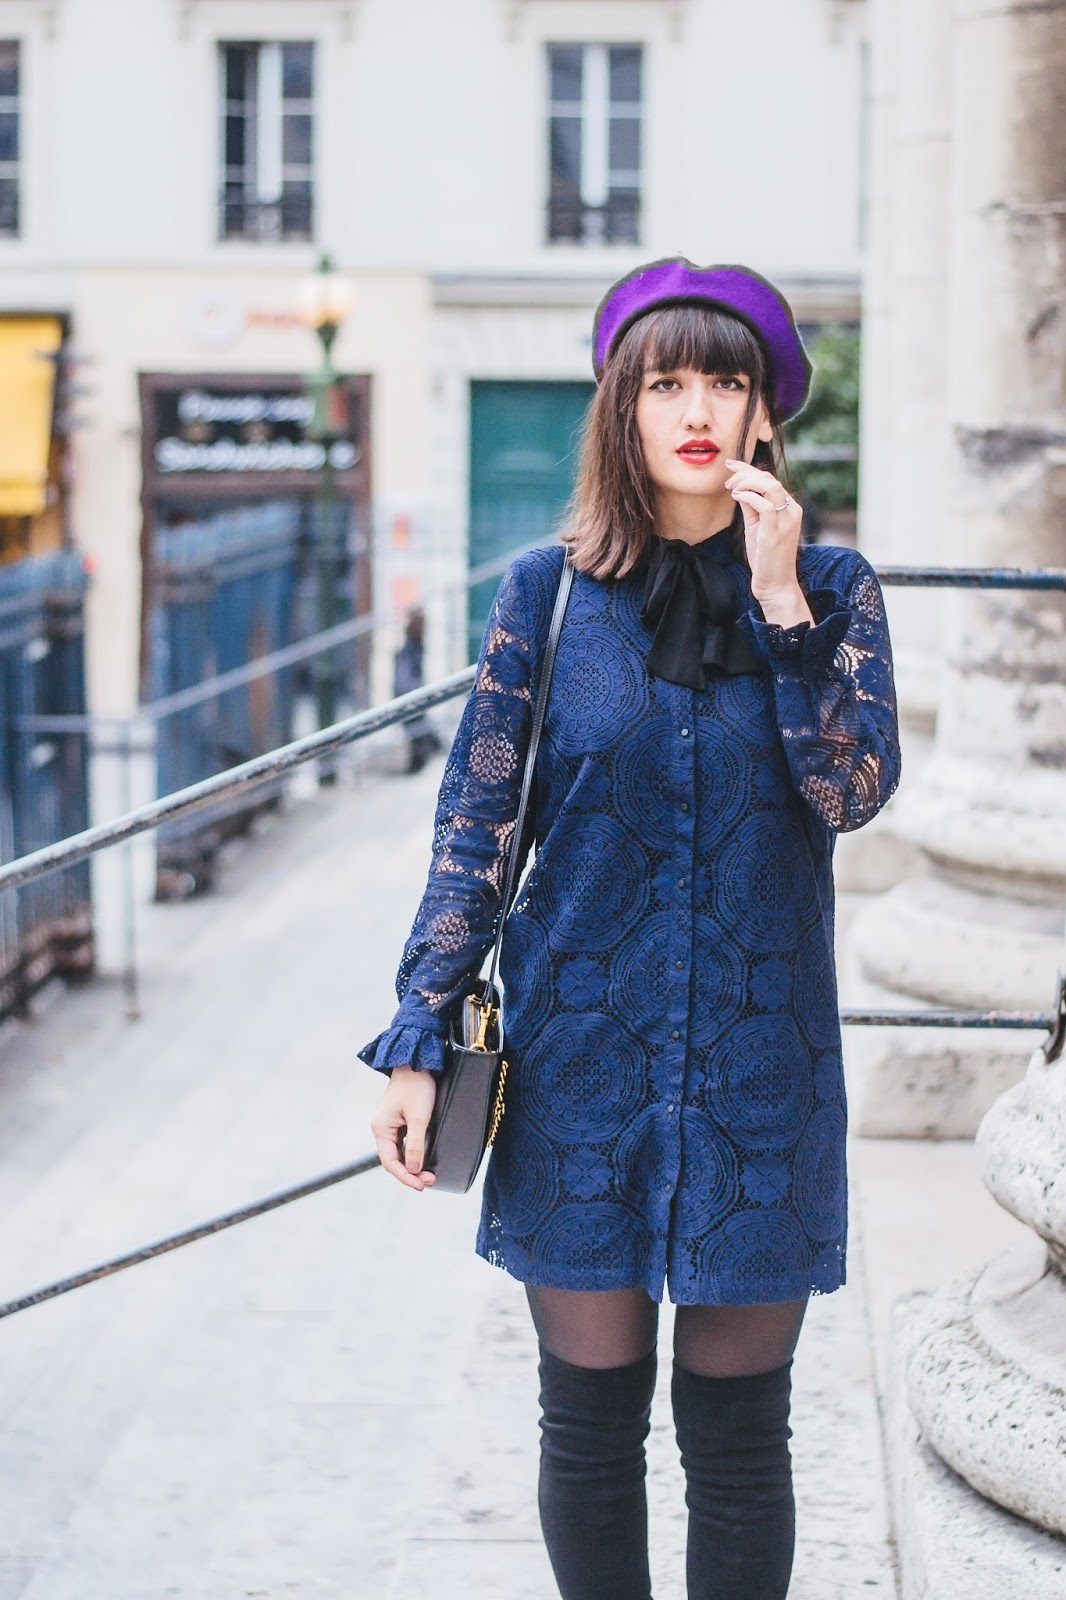 parisianfashionblogger-look-style-mode-fashion-meetmeinparee-streetstyle